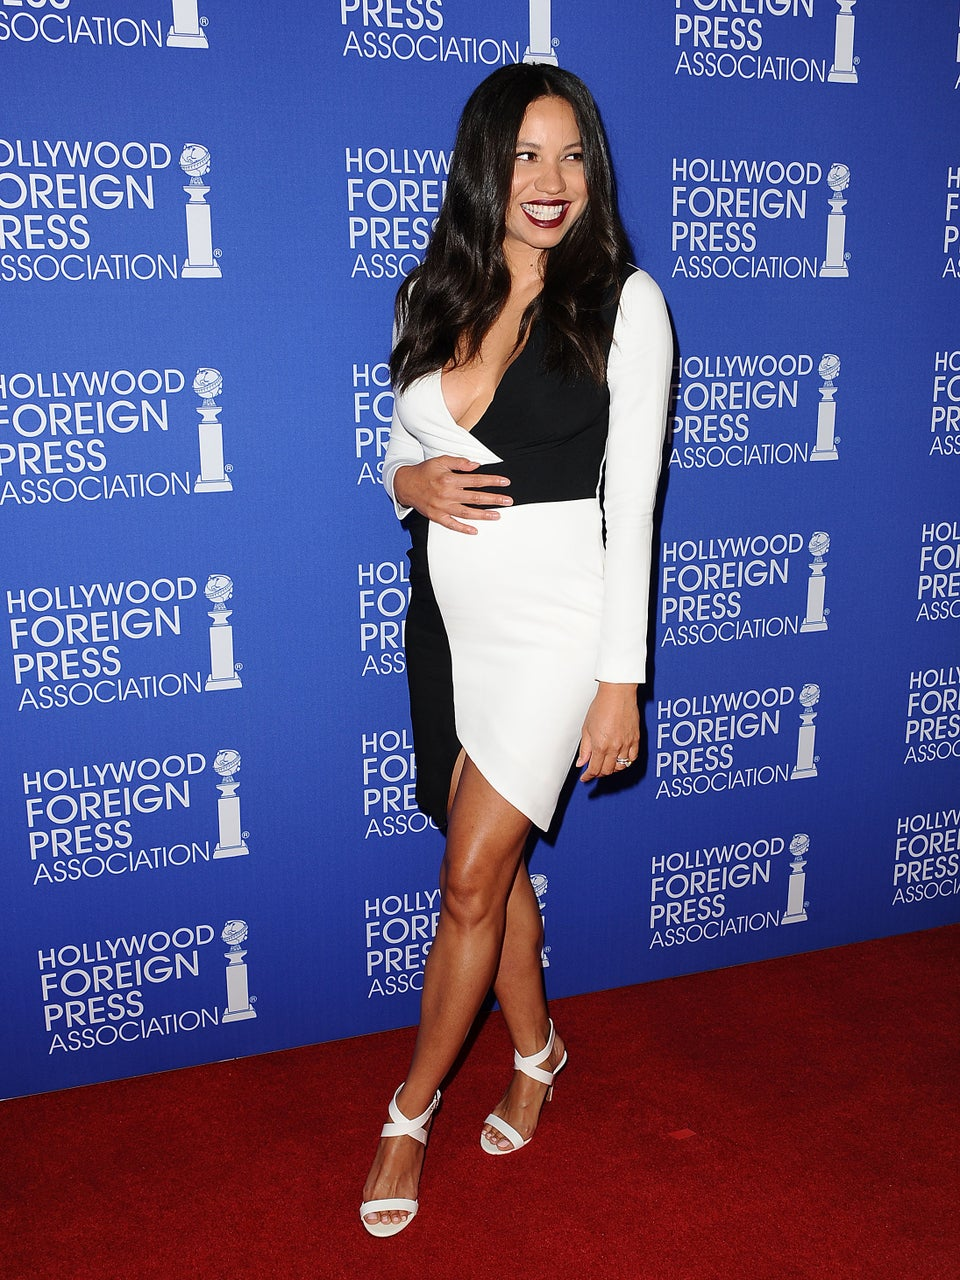 Look of the Day: Jurnee Smollett Shows Off Baby Bump in Chic Black and White Frock